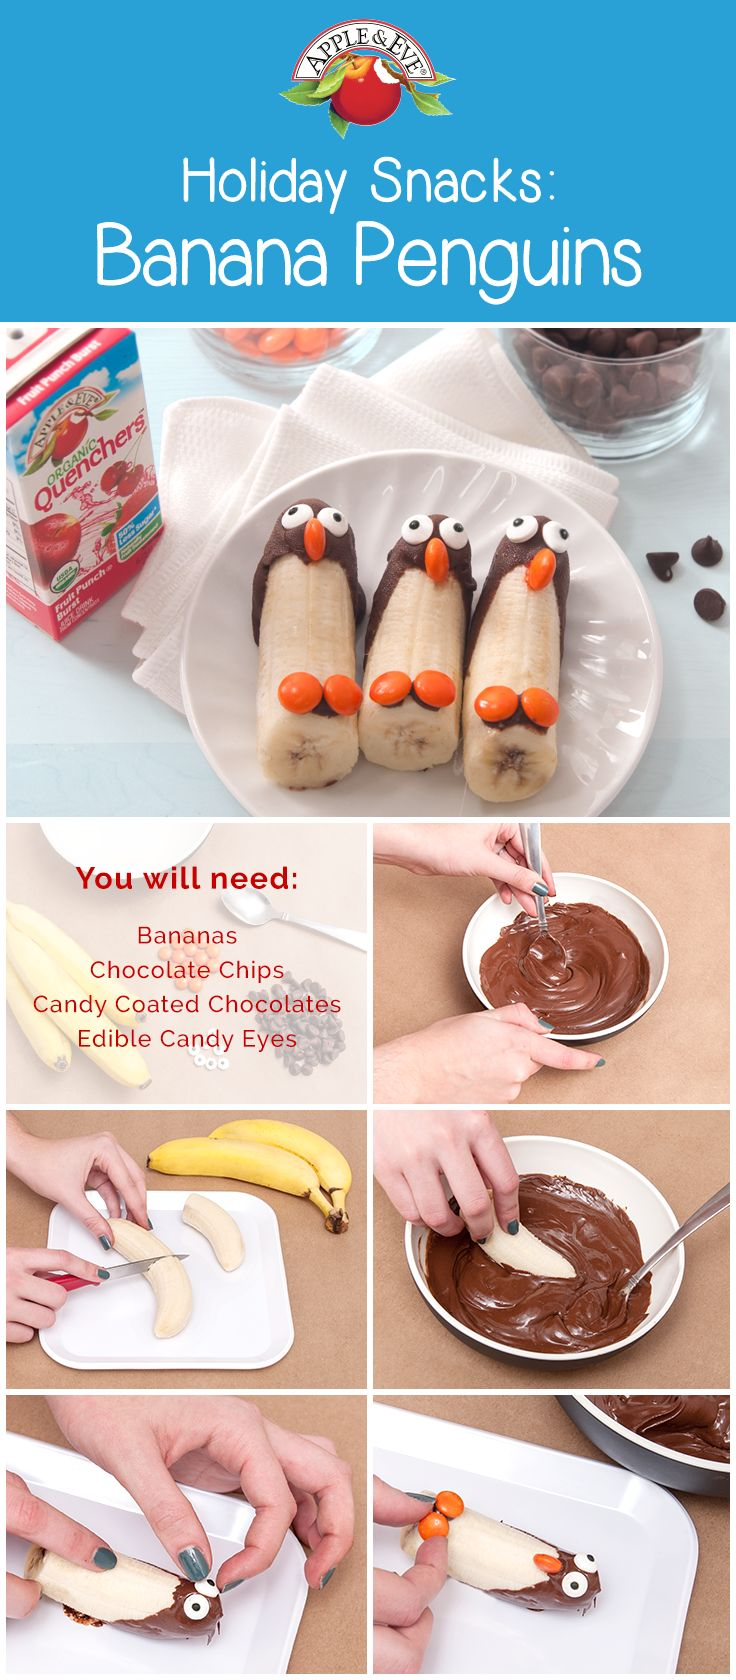 Add some holiday cheer to snack time with these yummy banana penguins!